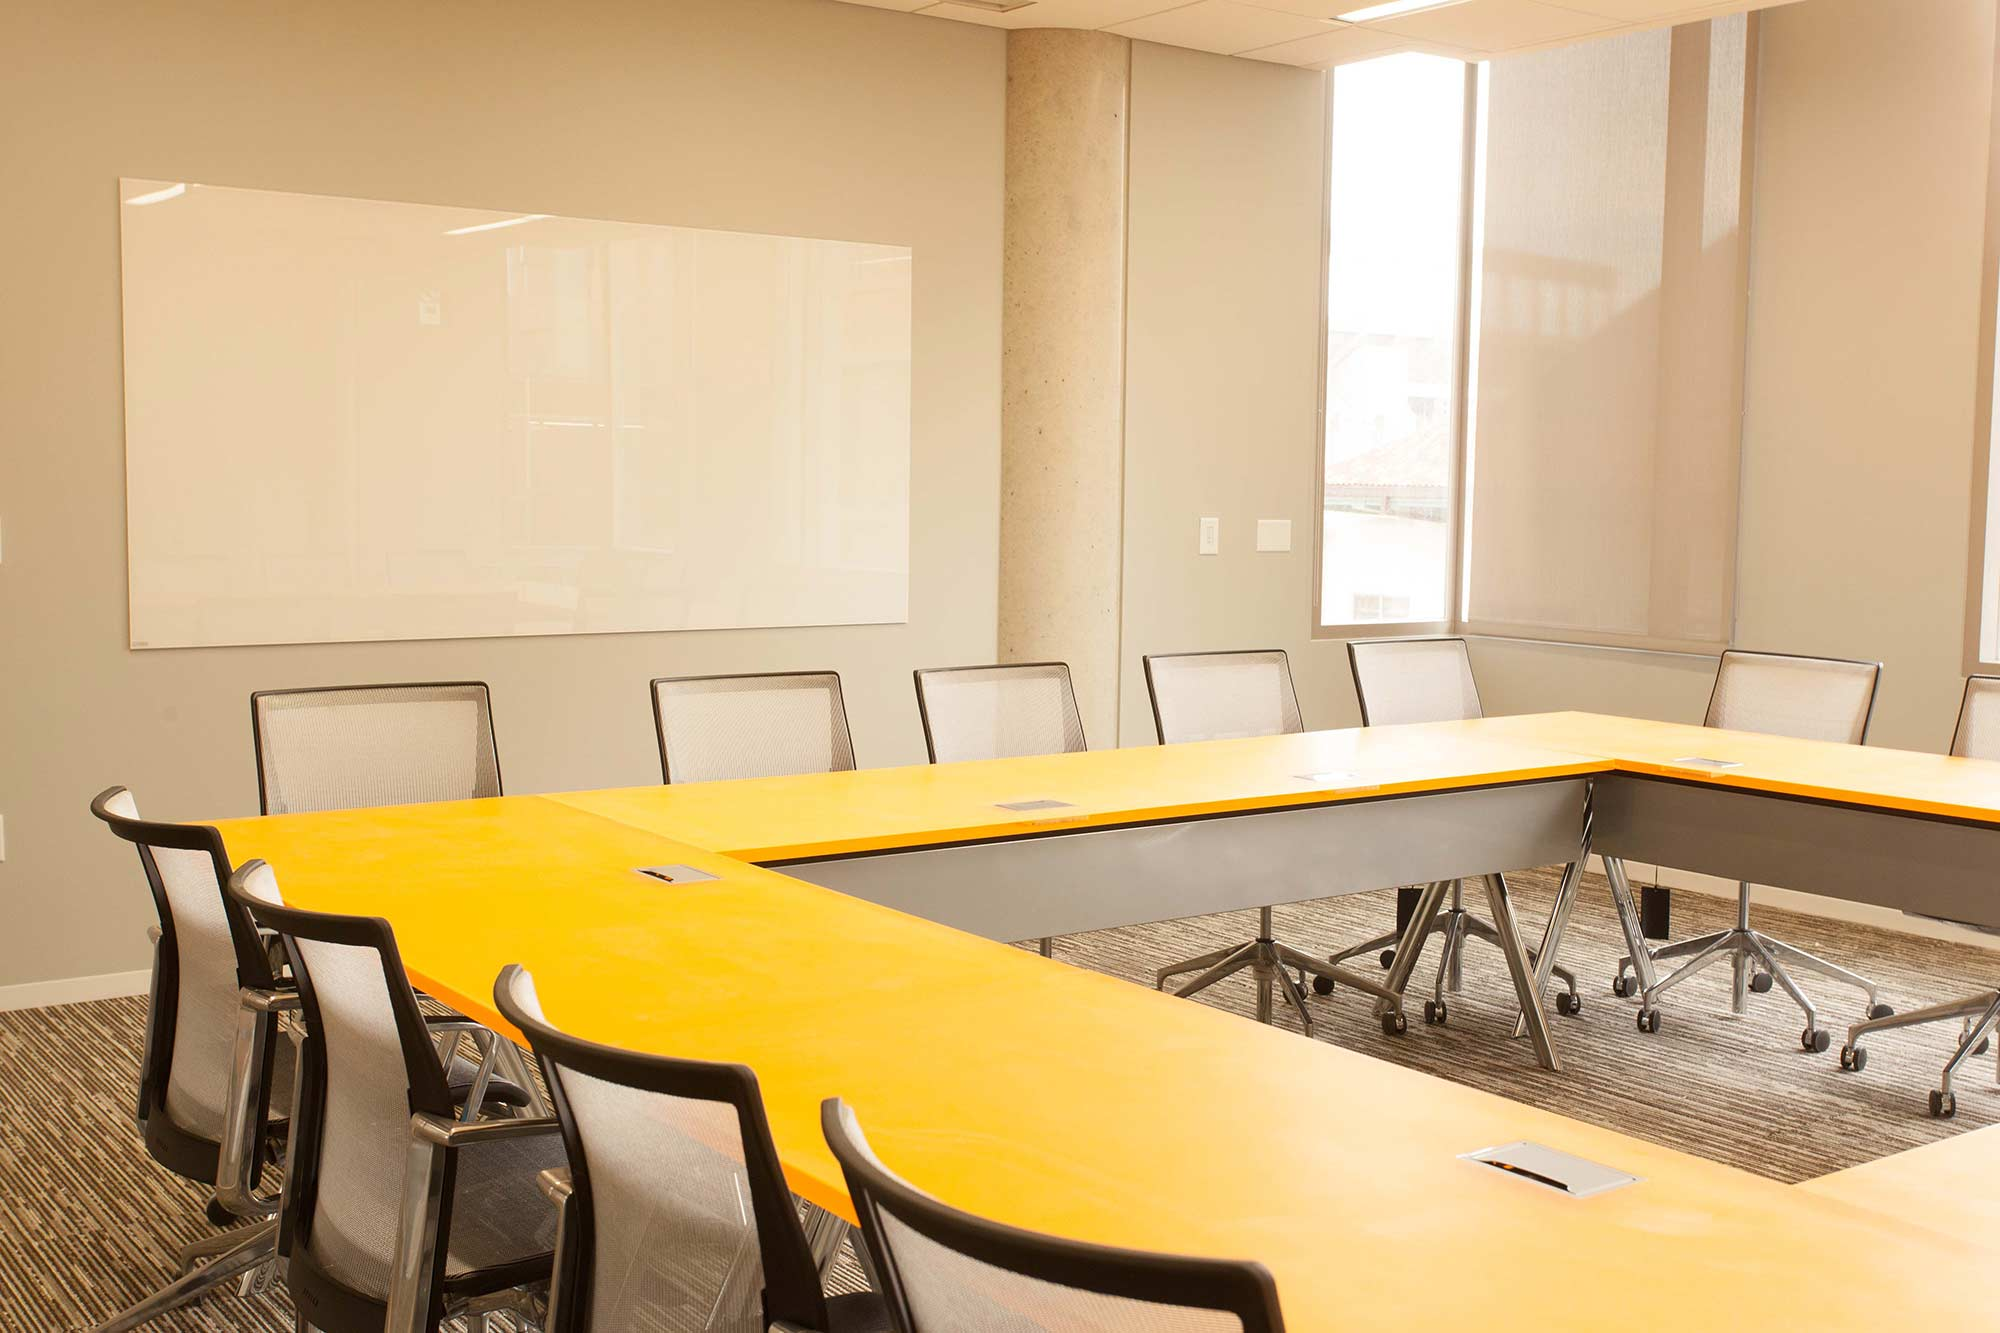 Clarus -Glass Whiteboards